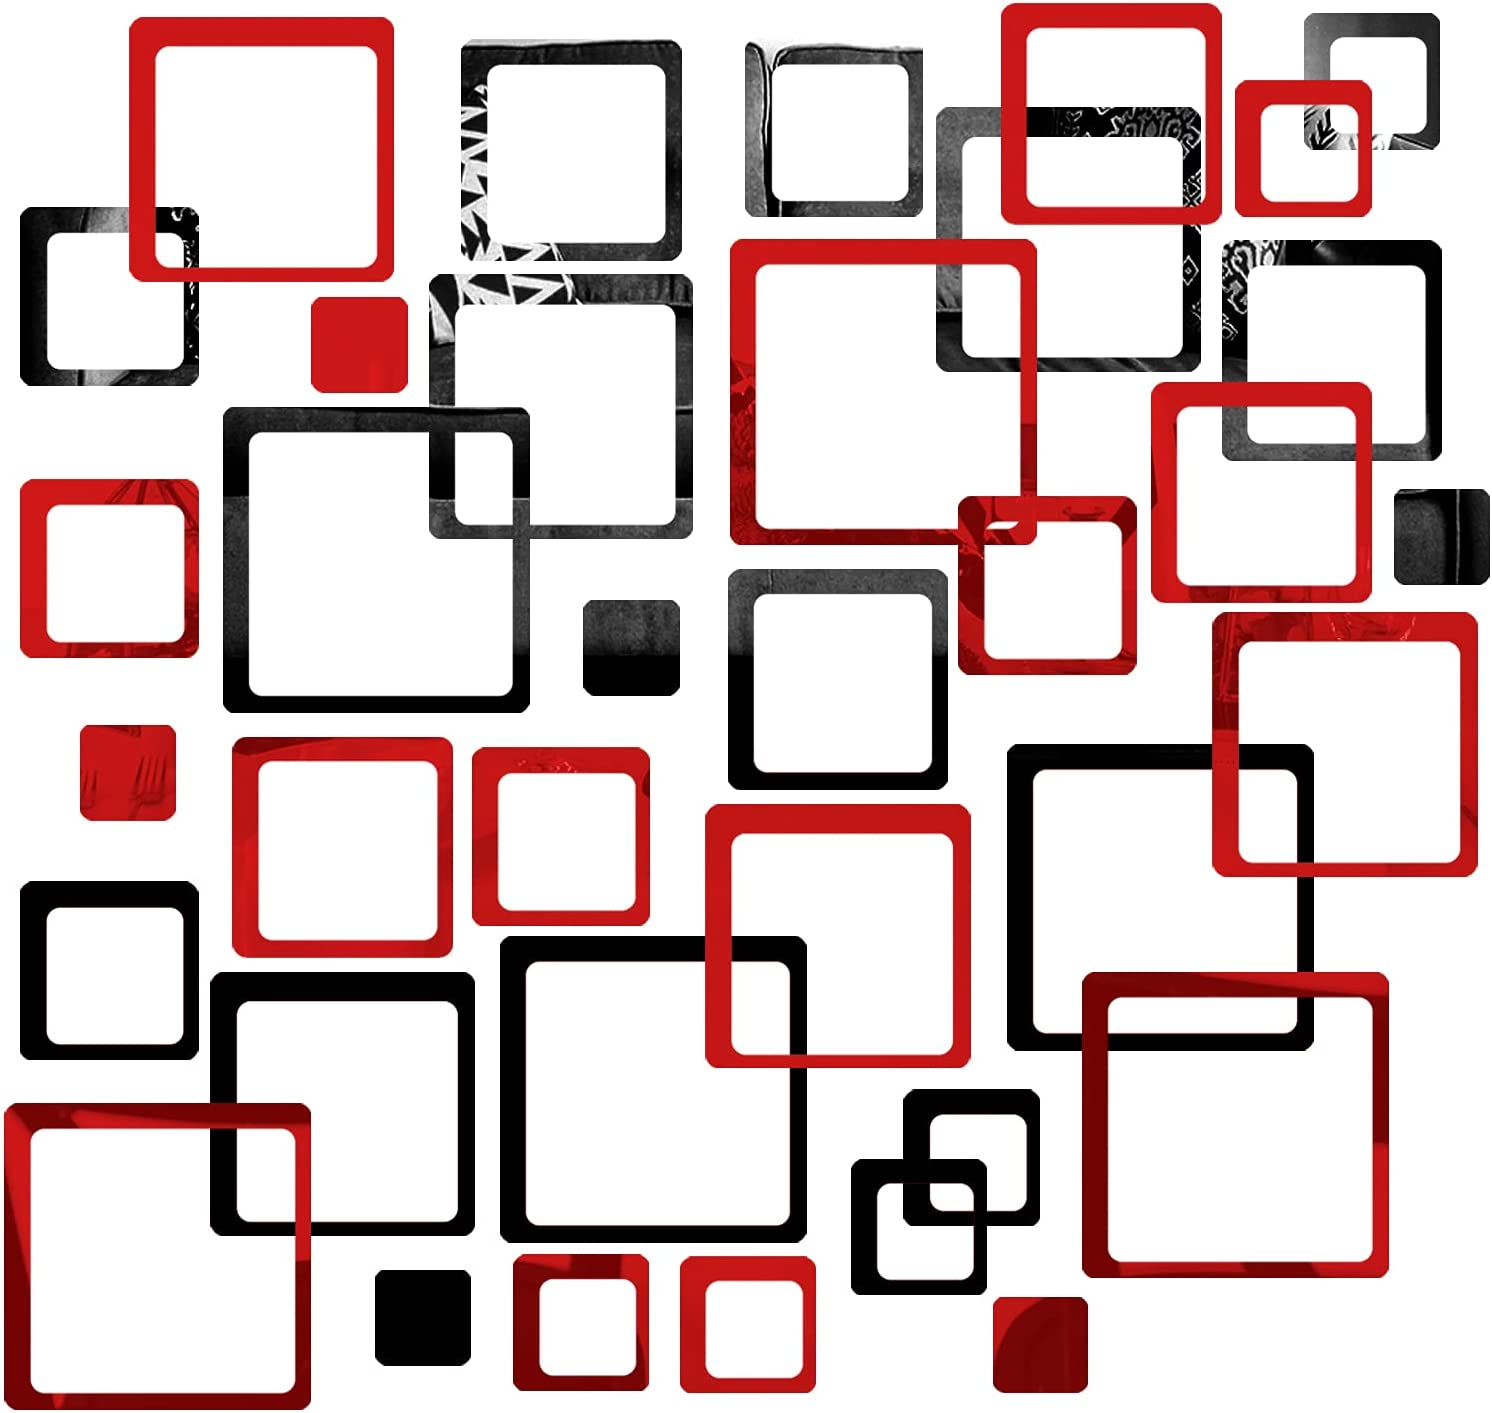 MicButty Mirror Wall Stickers, 36Pcs Acrylic Square Mirror Wall Stickers DIY Decals Modern Art Mural for Home Living Room Bedroom Decor (Black and Red, 8 x 8 Inch)